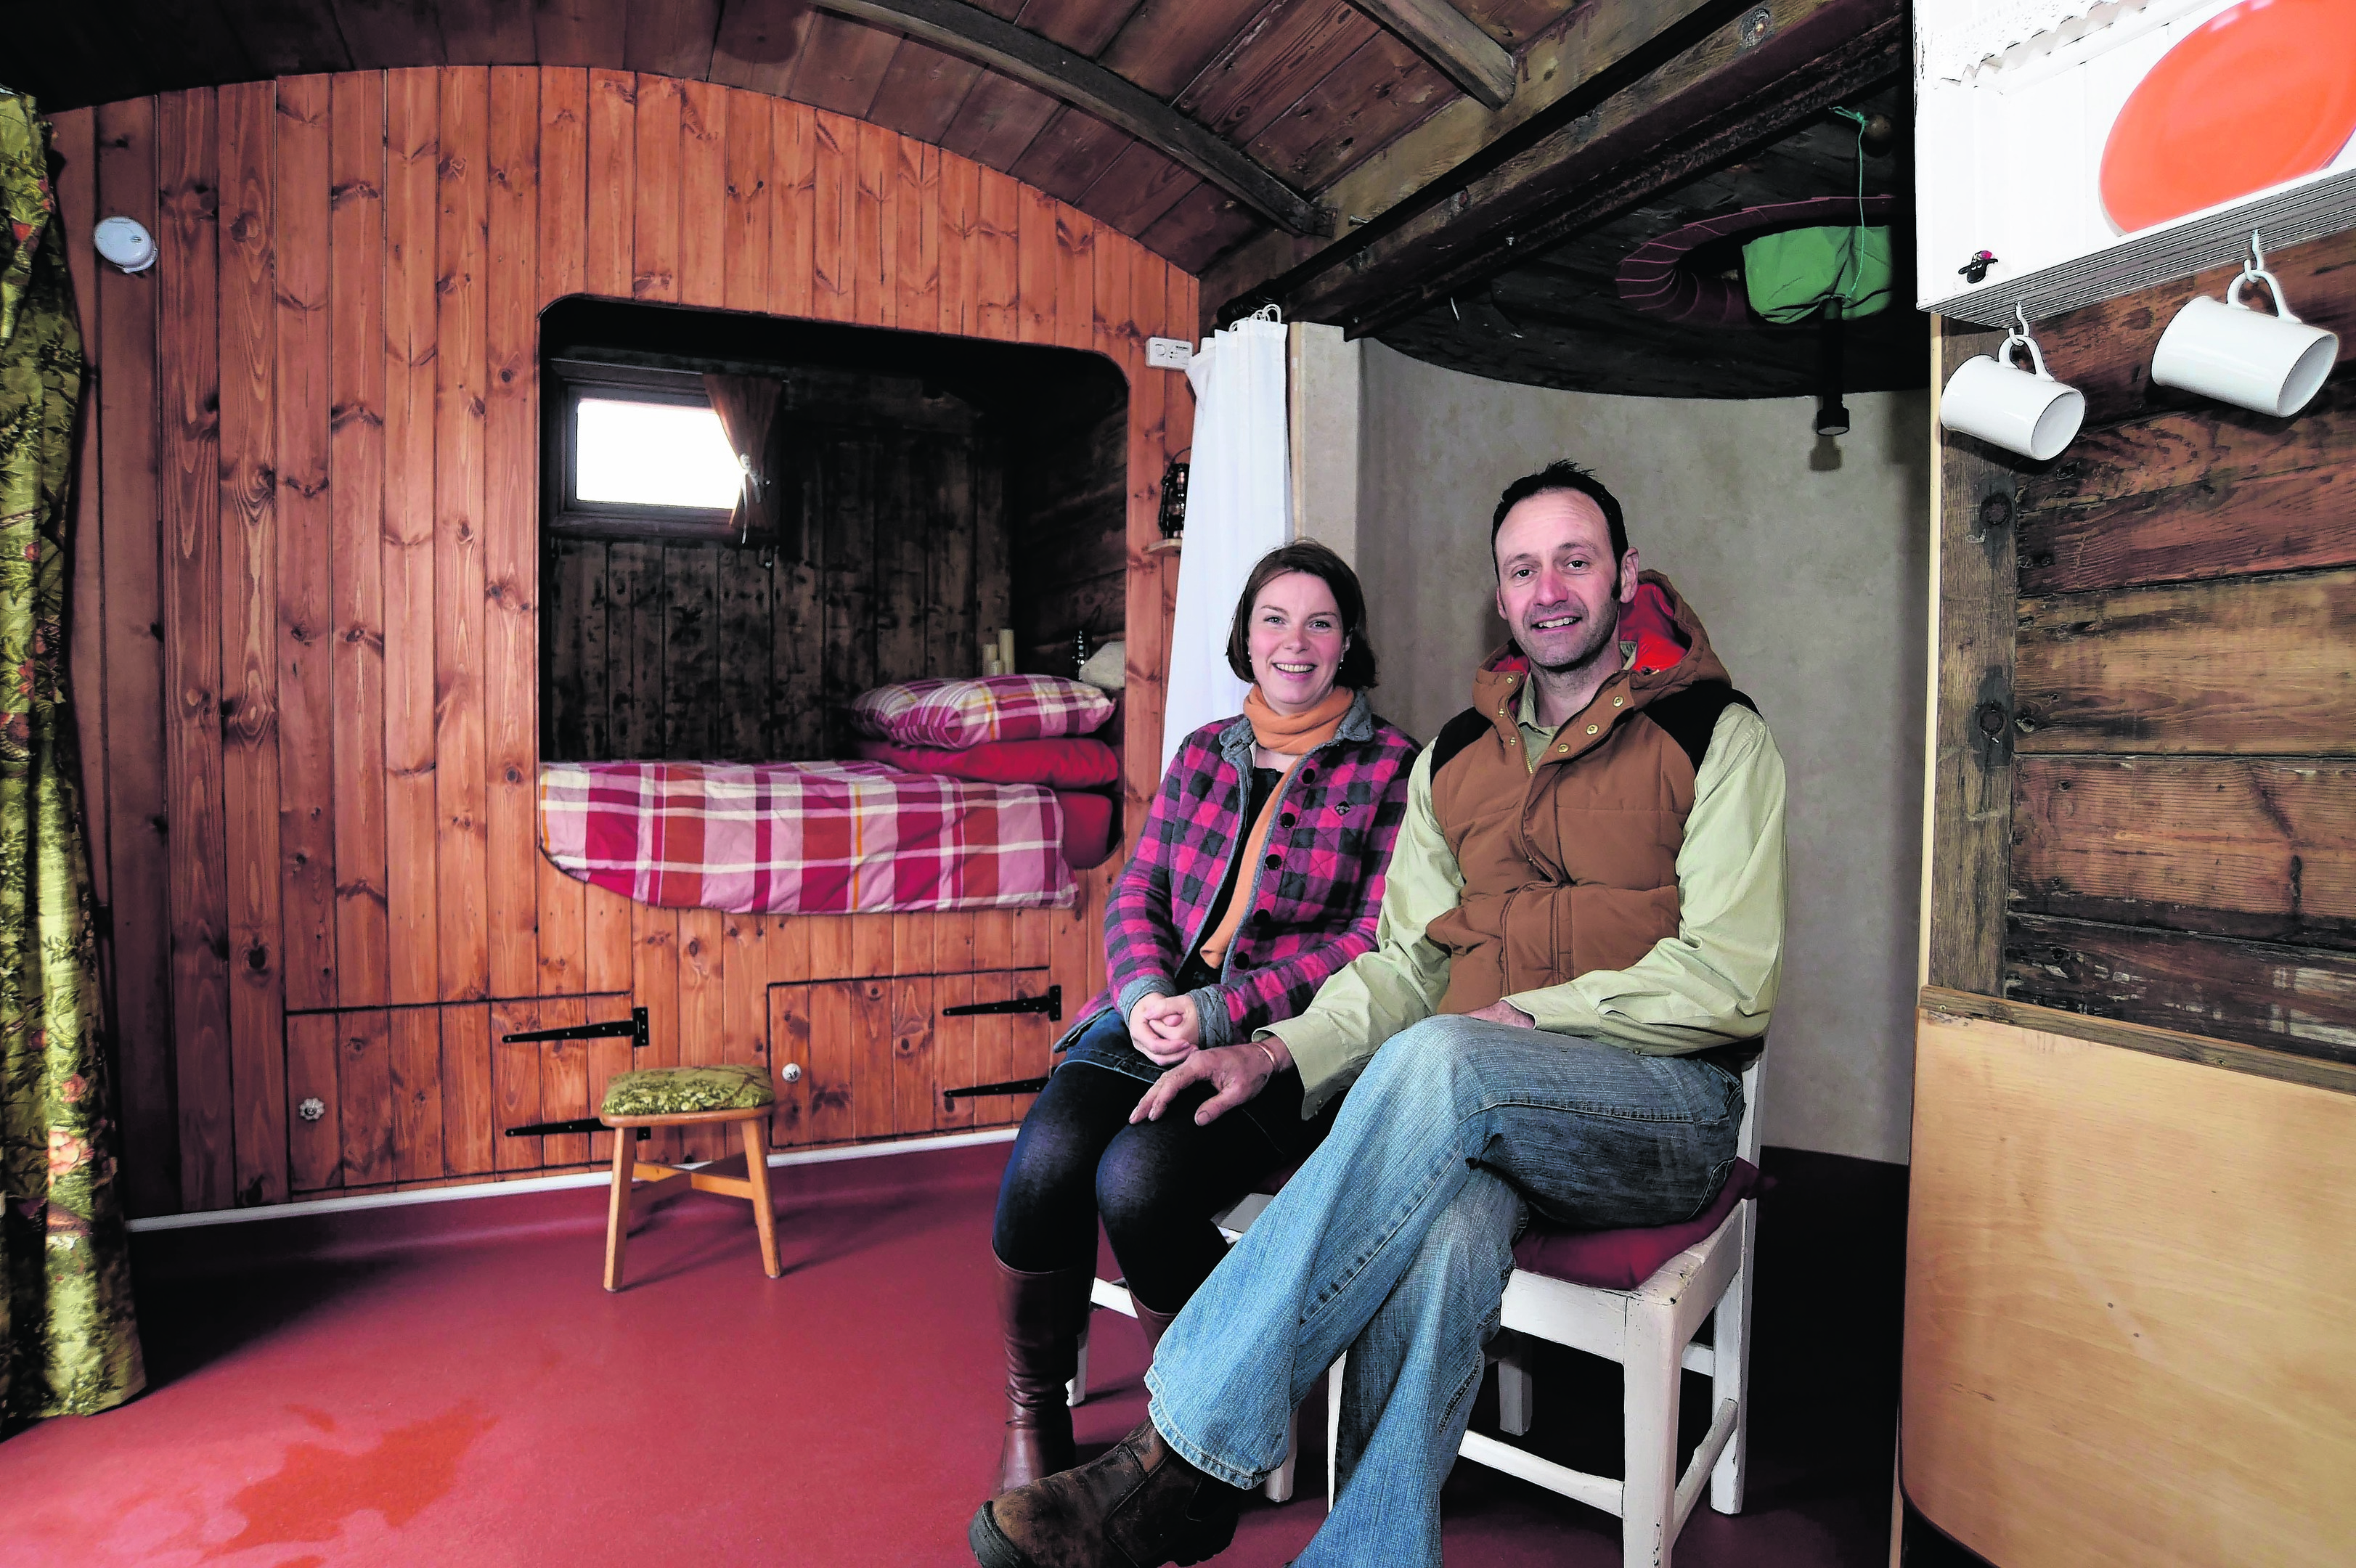 MATTHEW AND CAROLE SHORT IN THE 1930'S FREIGHT TRAIN CARRIAGE THEY CONVERTED TO A HOLIDAY HOME AT HIGH SEAS HOBBITS, ROSEHEARTY.